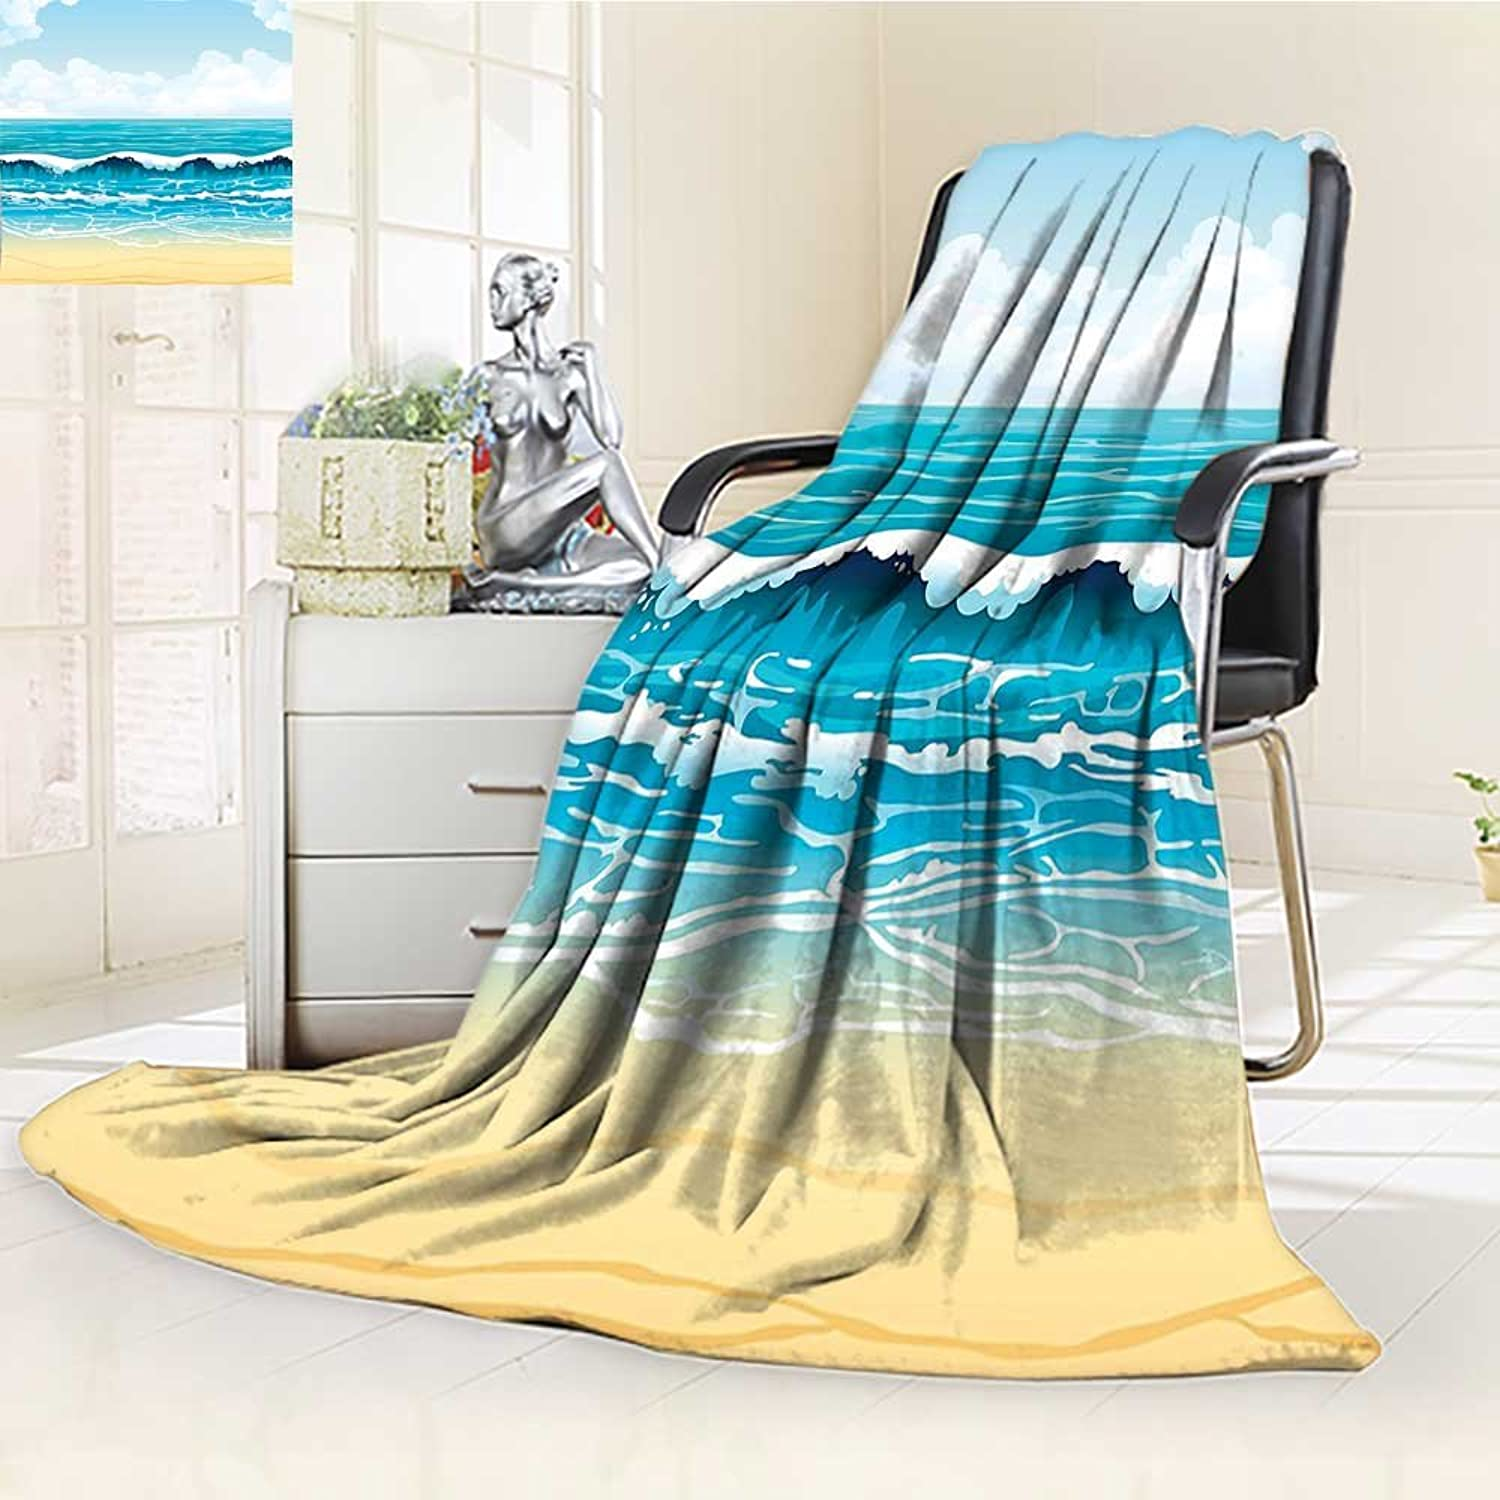 YOYI-HOME Digital Printing Duplex Printed Blanket of Summer Landscape with Waves and Sandy on a Bright Sky with Clouds Cream bluee Summer Quilt Comforter  W59 x H39.5